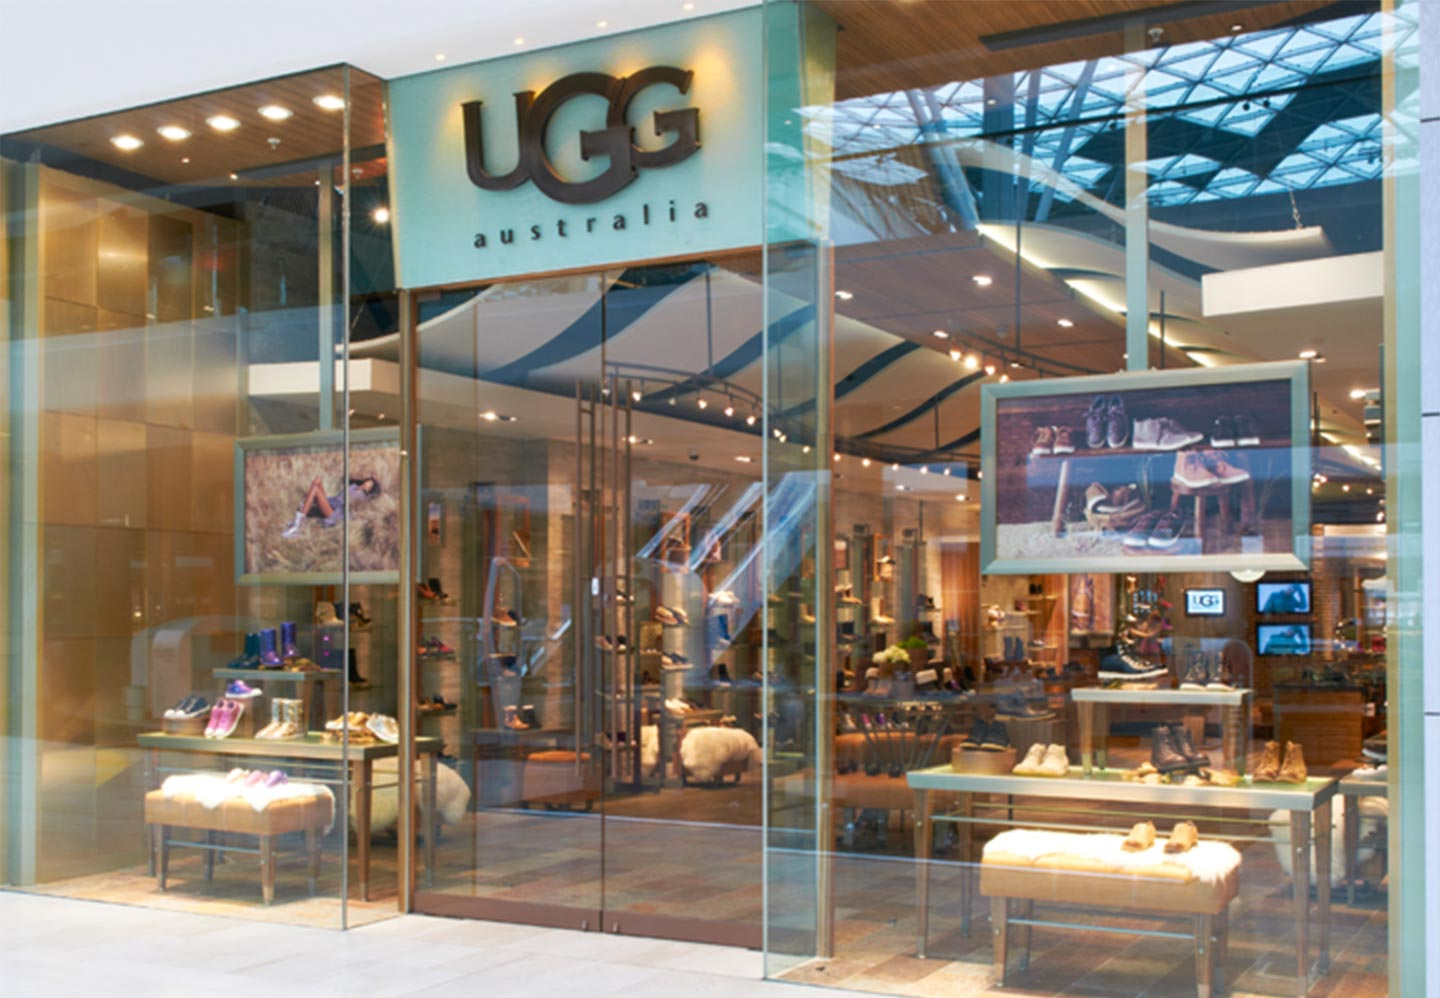 storefront of London Ugg retail store